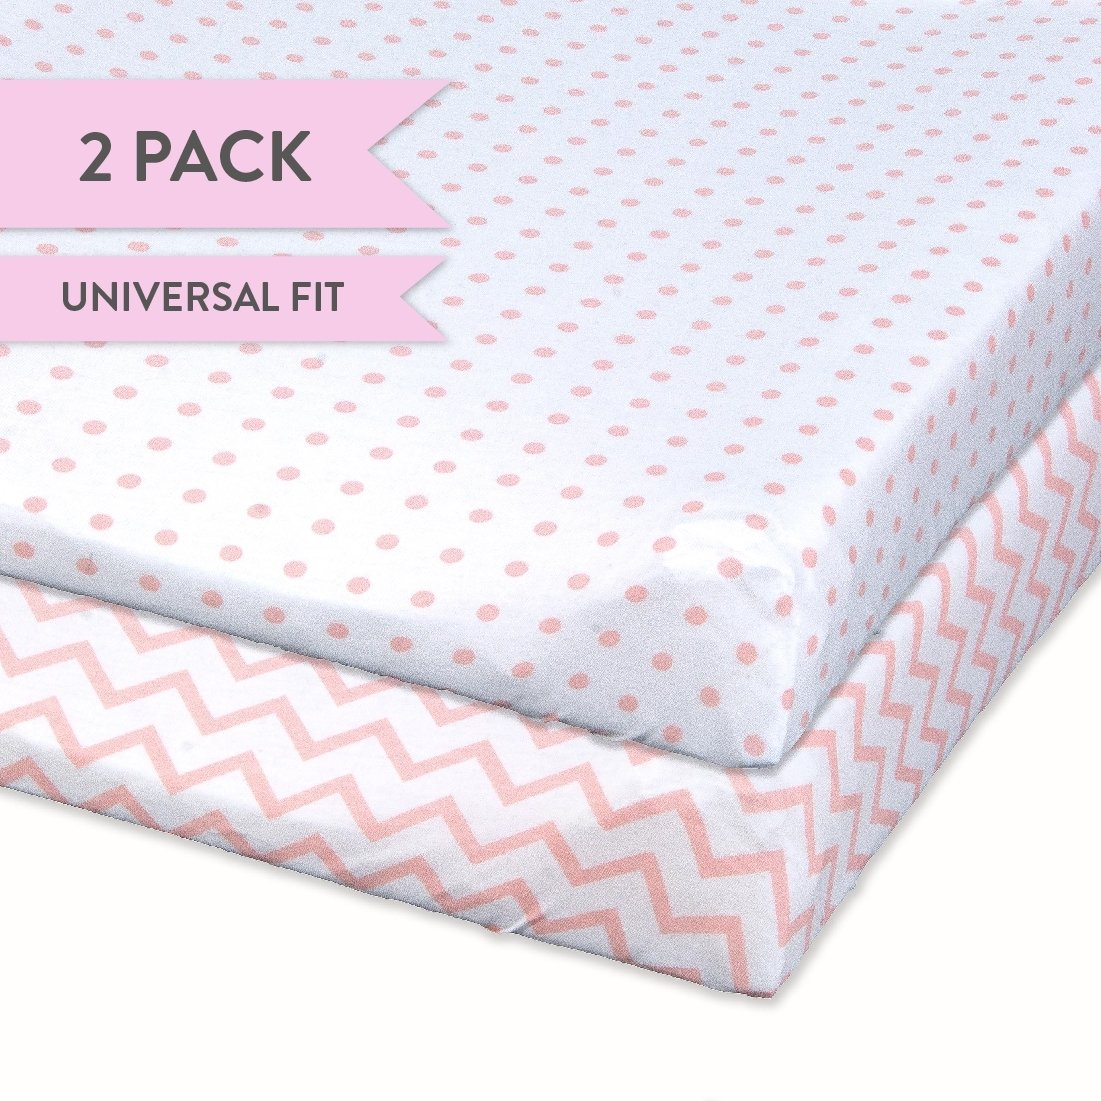 Changing Pad Cover Set | Cradle Sheet Set 100% Cotton Jersey Knit 2 Pack Pink Chevron and Polka Dots